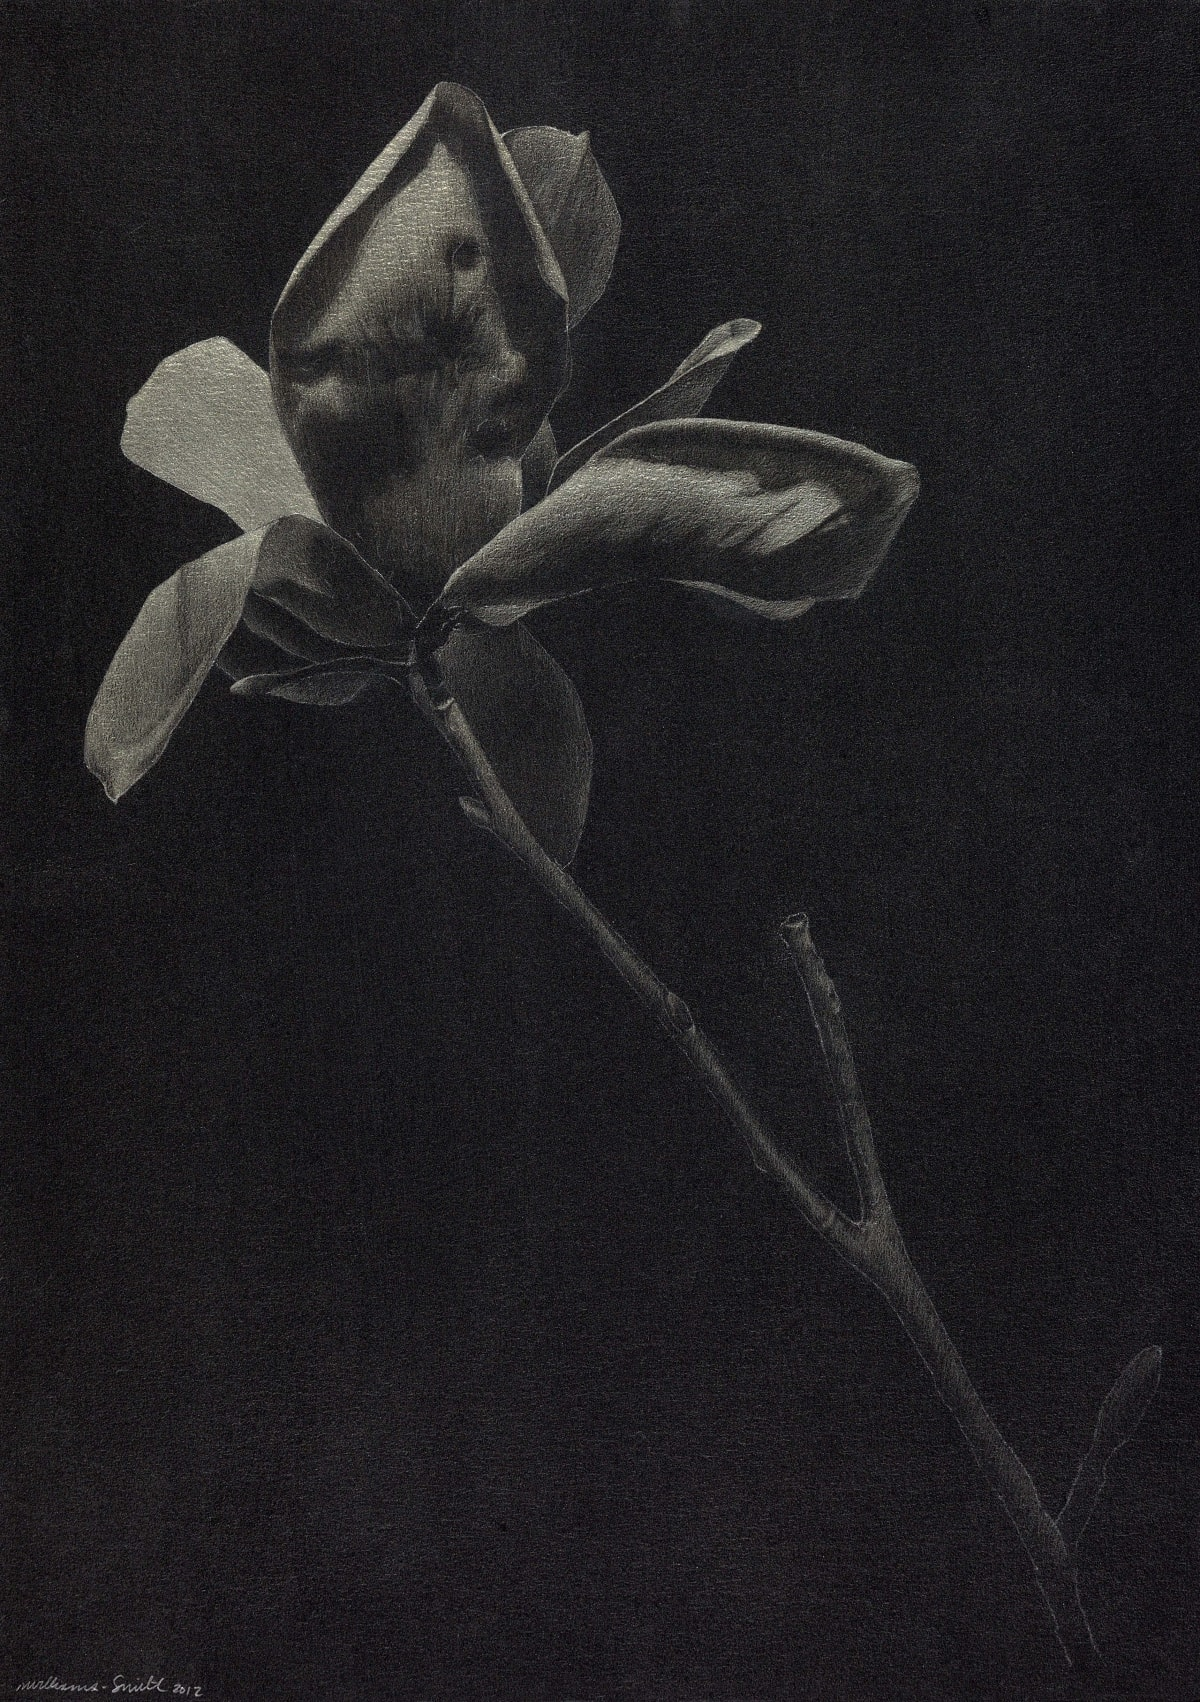 Marjorie Williams-Smith Uplifted, 2012 Silverpoint on Black Acrylic Gesso 13 3/4 x 10